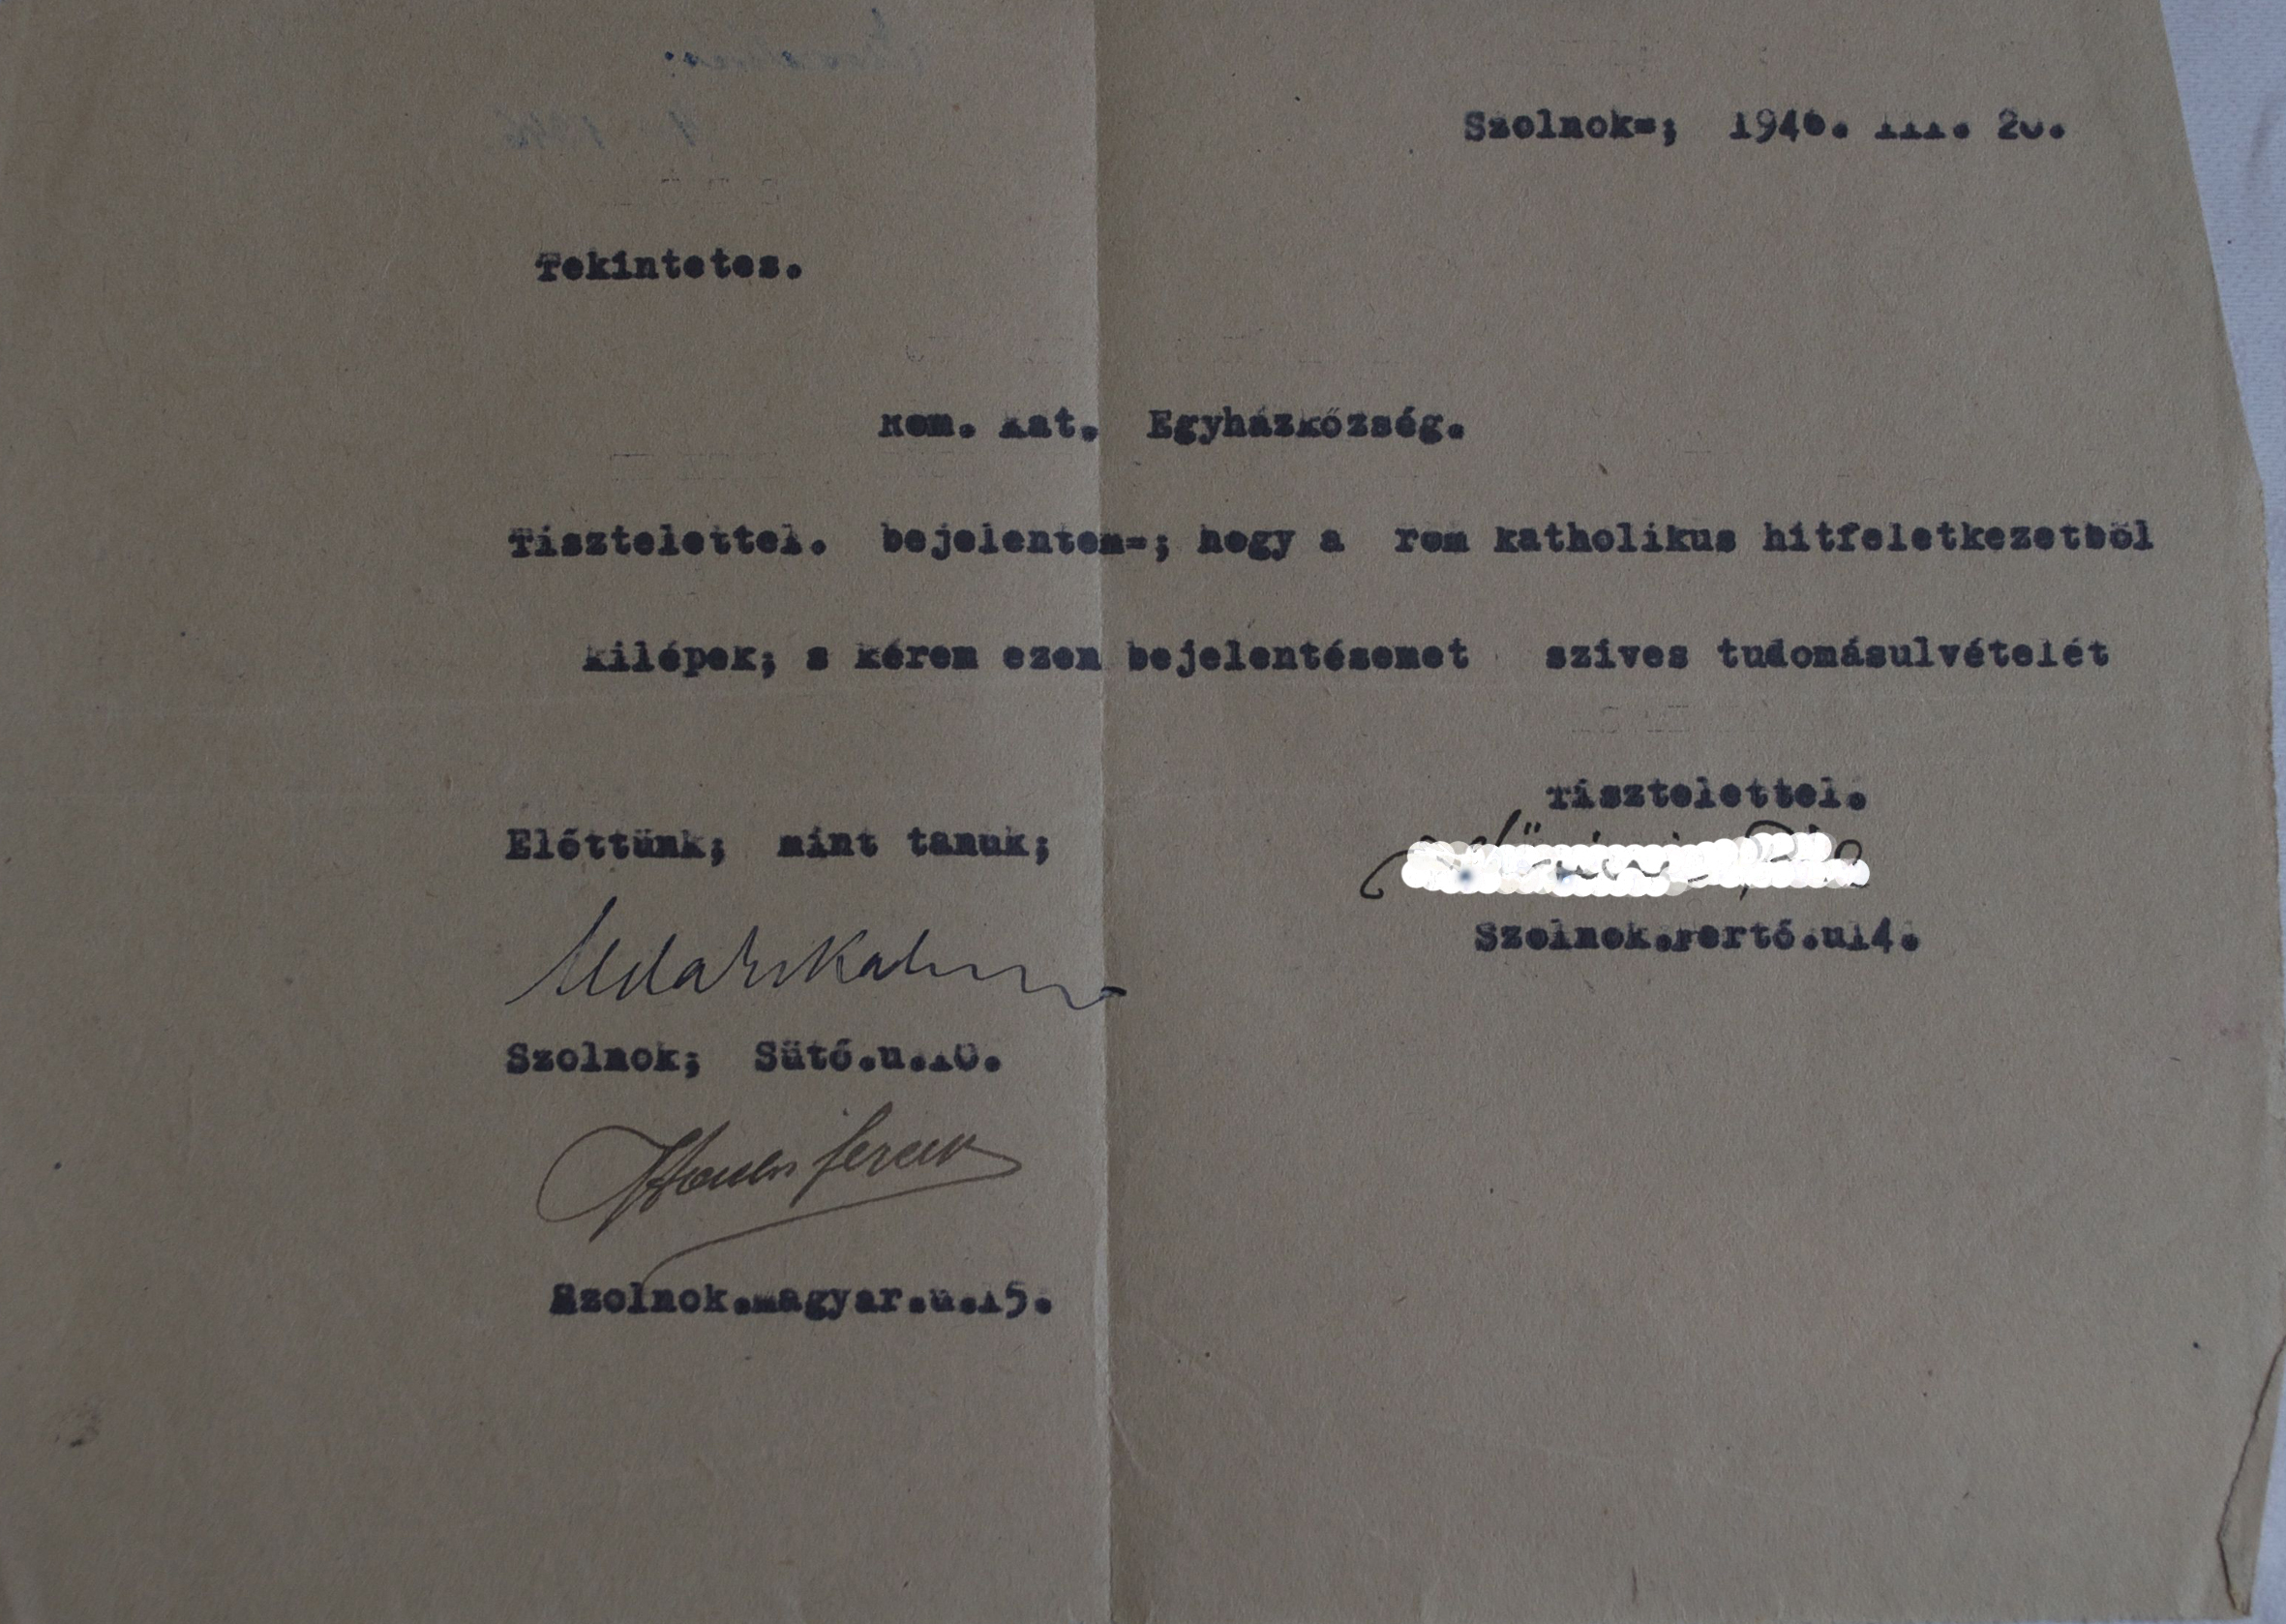 A survivor declares that s/he wishes to leave the Roman Catholic Church. S/He most probably converted to Christianity during the Holocaust in an attempt to save his/her life and wanted to return to his/her original faith after the war. The document is held by the Szolnok Jewish Community.